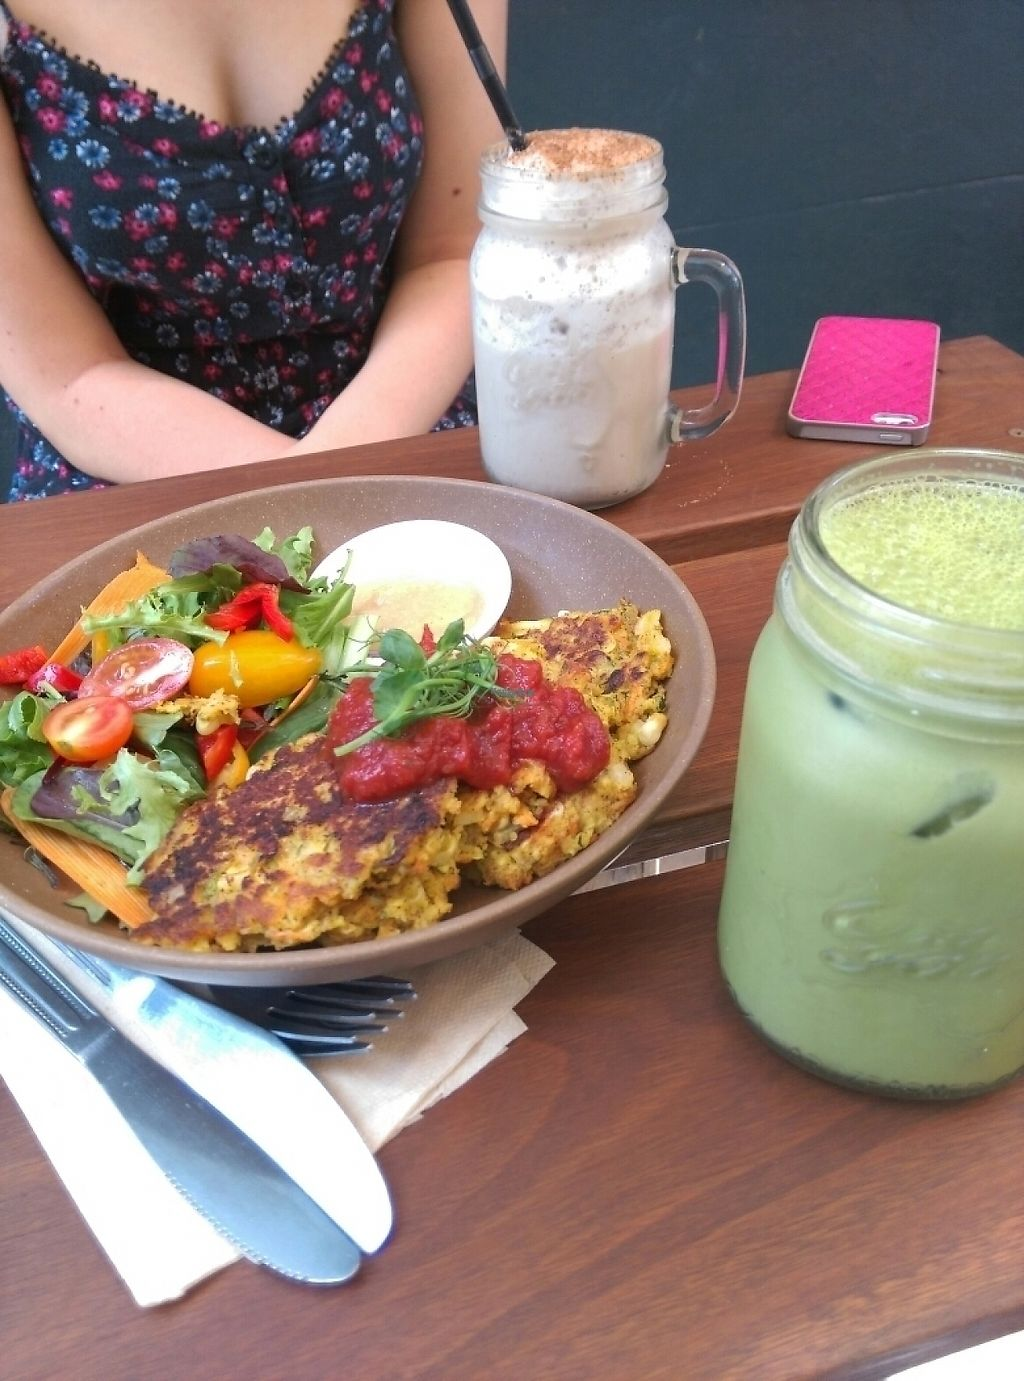 "Photo of Full Of Life Organics  by <a href=""/members/profile/p.s.vegan"">p.s.vegan</a> <br/>Vegetable fritters with homus & salad and drinking iced matcha & chai <br/> February 10, 2017  - <a href='/contact/abuse/image/67415/225066'>Report</a>"